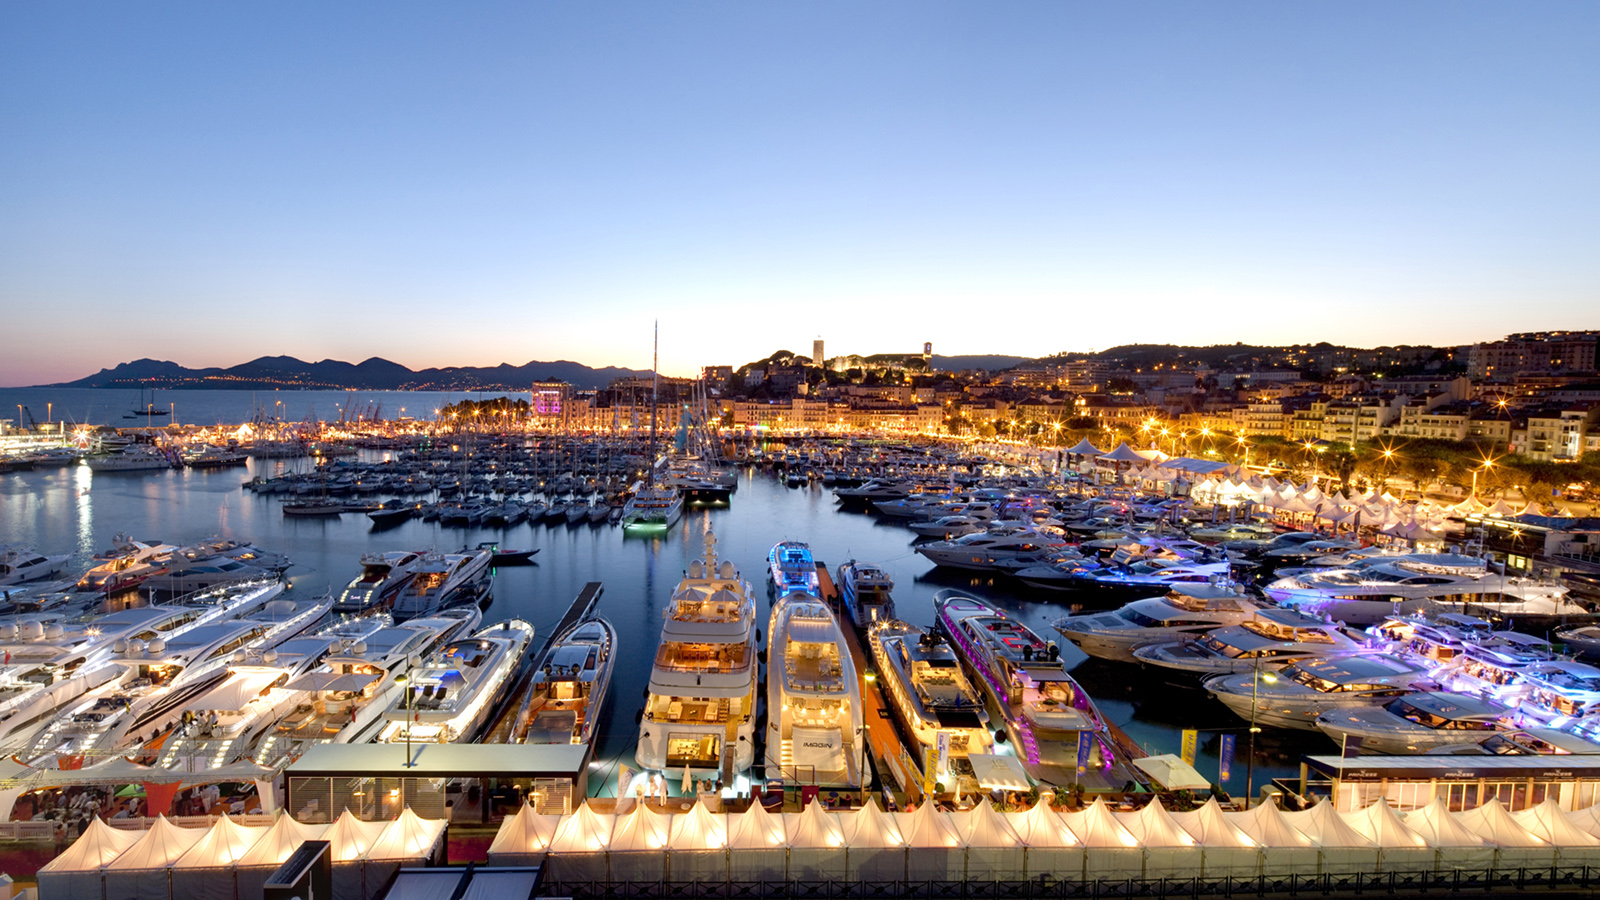 Salon Nautique Cannes Cannes Yachting Festival The Largest Boat Show In Europe